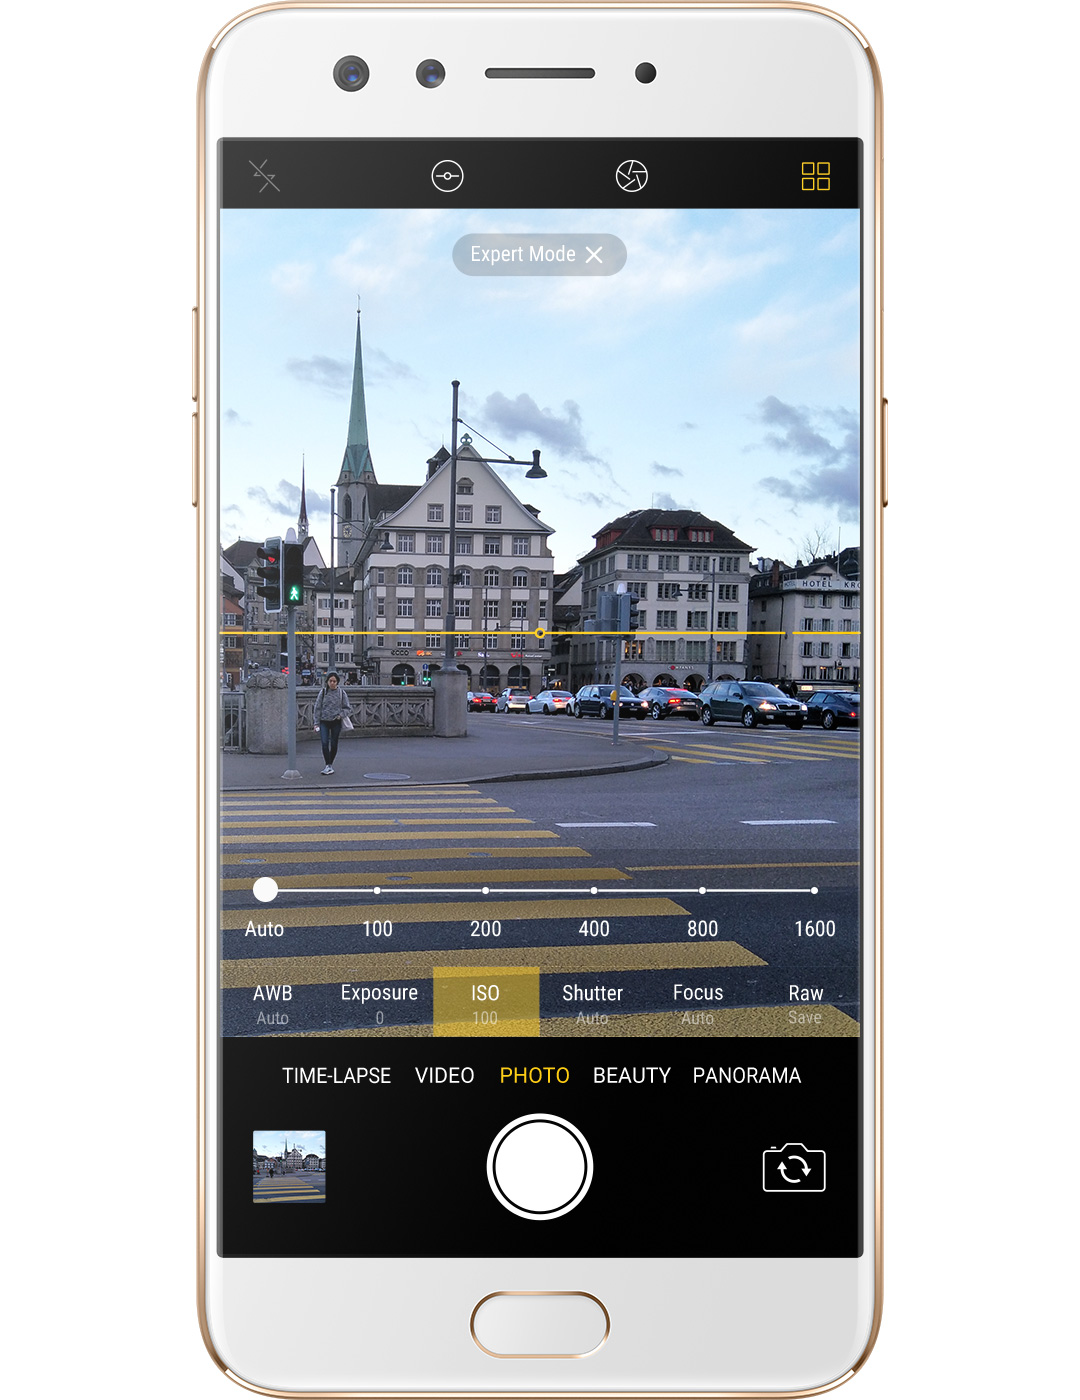 Oppo f3 oppo kenya when expert mode is active you can manually adjust parameters like focus white balance iso and more get down to the nitty gritty and customize your stopboris Gallery